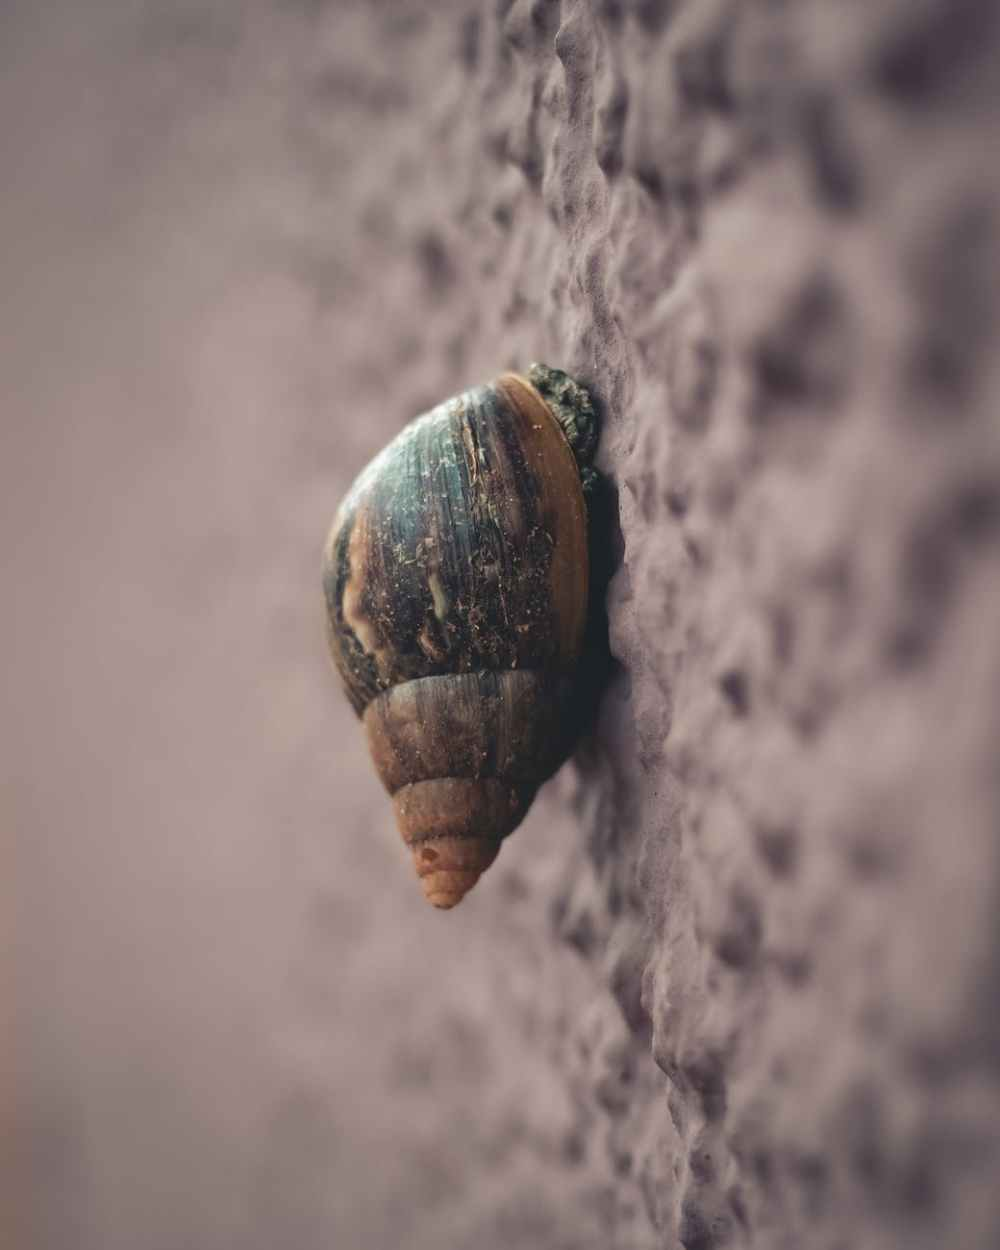 macro photography of snail on grey surface